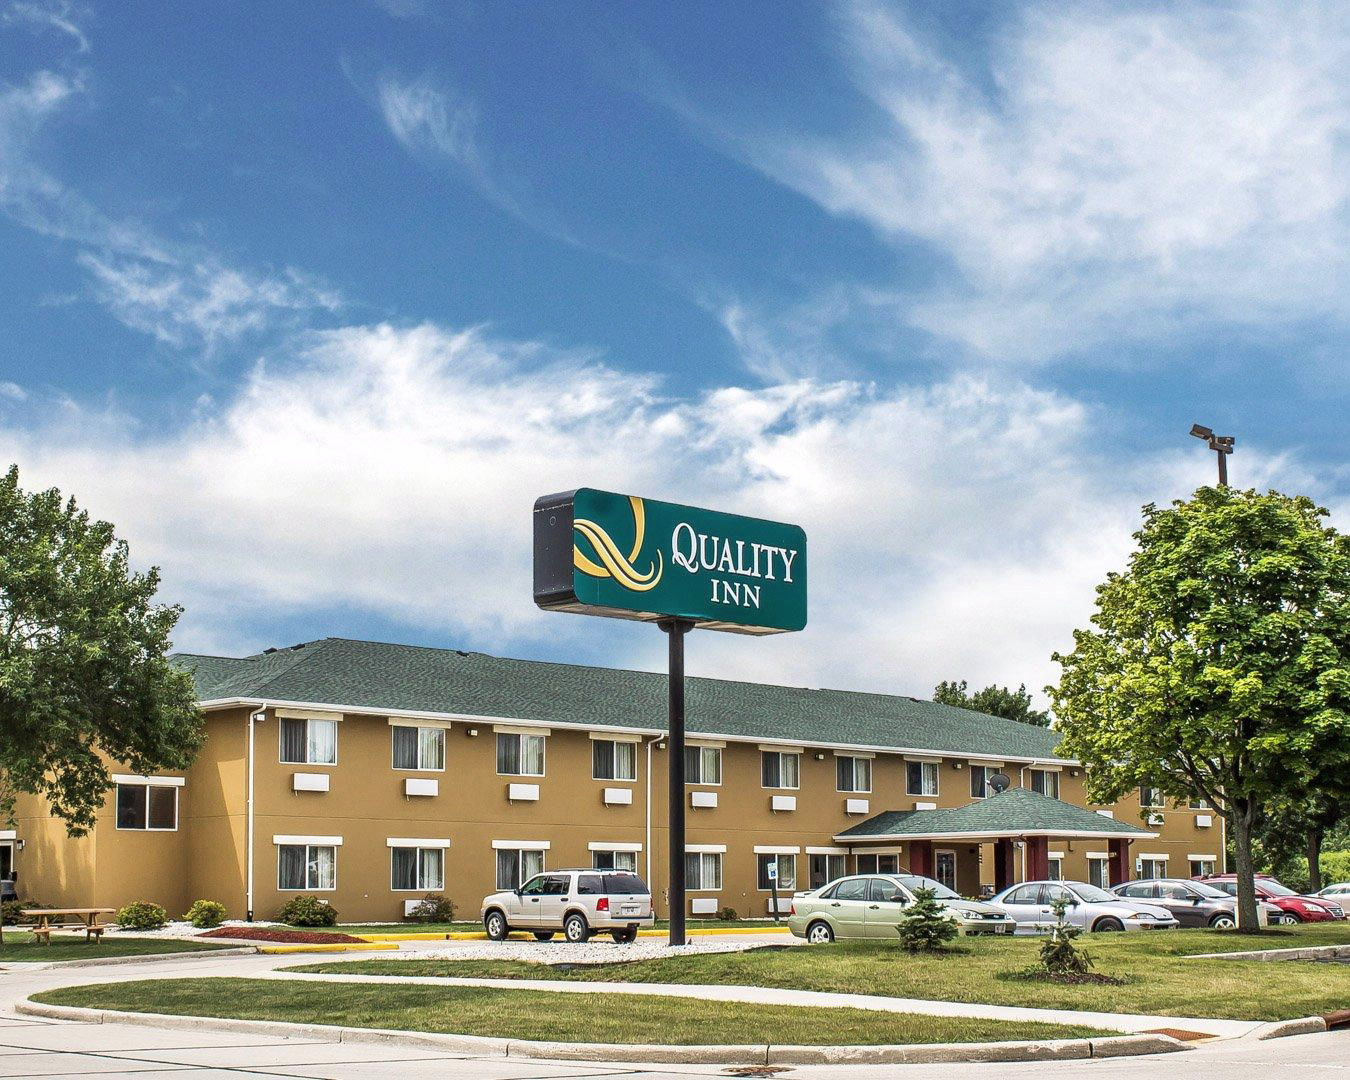 Quality Inn In Manitowoc Wi Whitepages